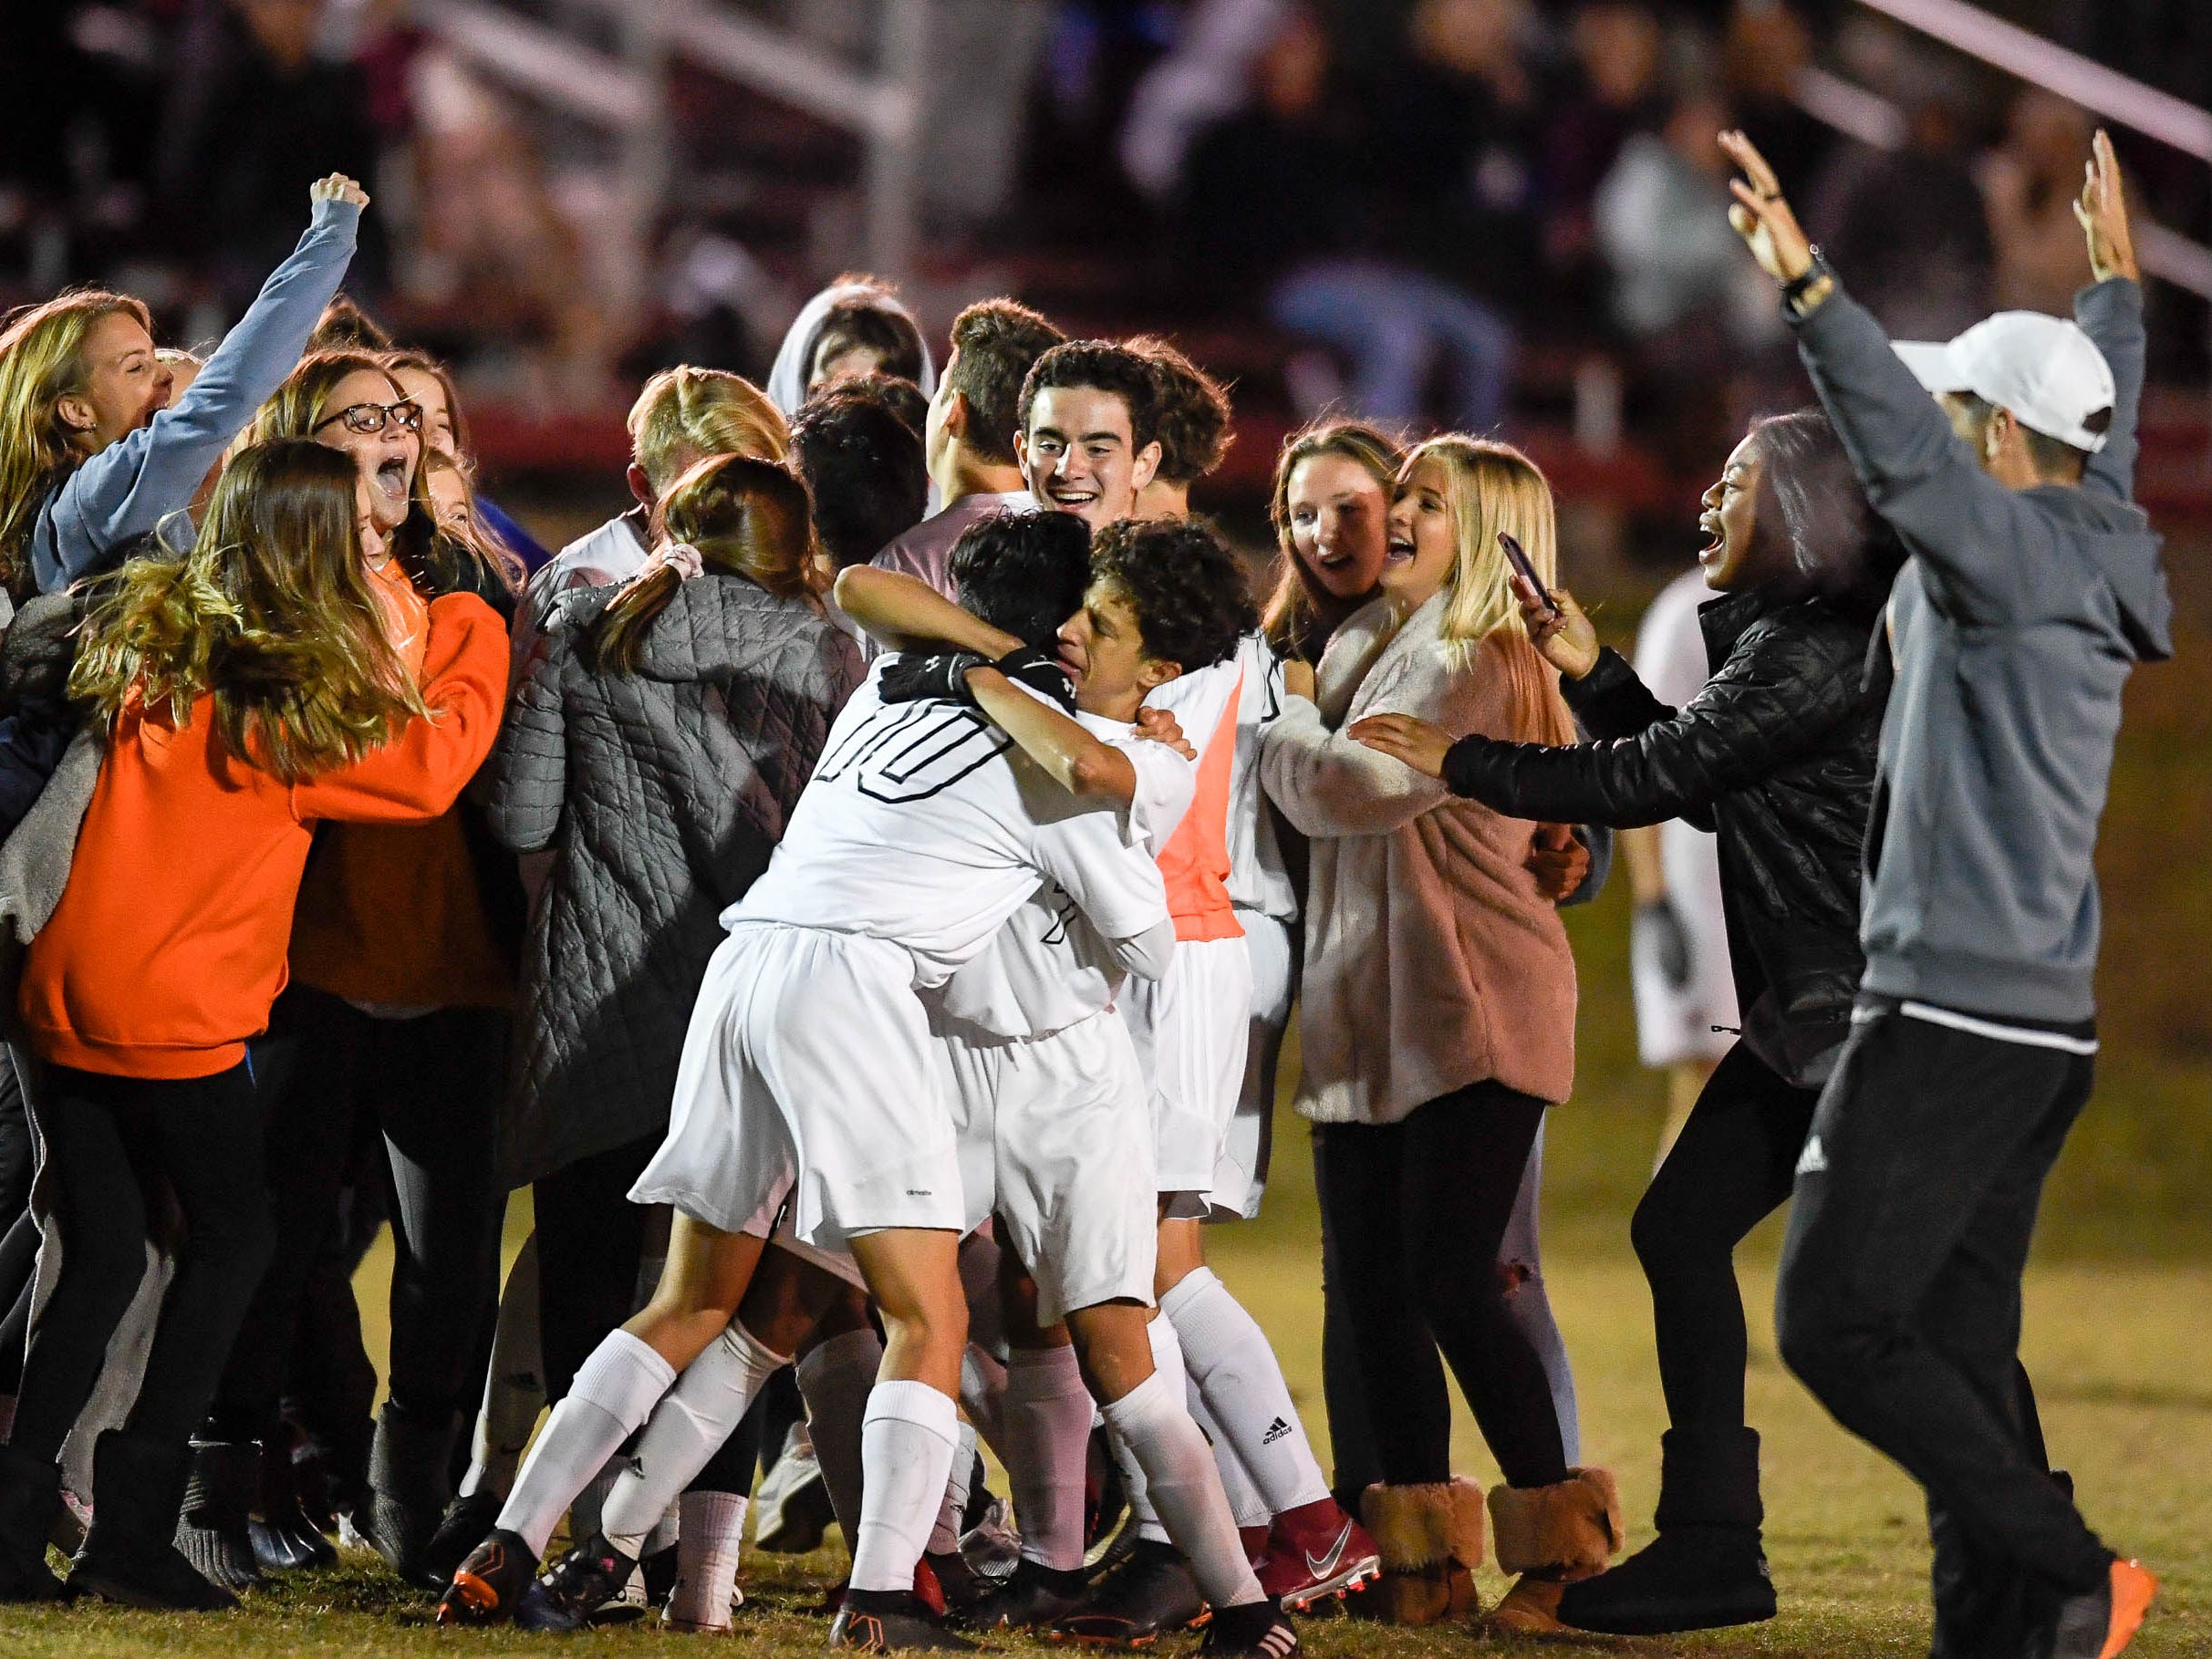 Hopkinsville team and fans celebrate winning the Second Region Championship 2-0 as the Henderson County Colonels play the Hopkinsville Tigers in the regional final at Madisonville-North Hopkins High School Thursday, October 18, 2018.